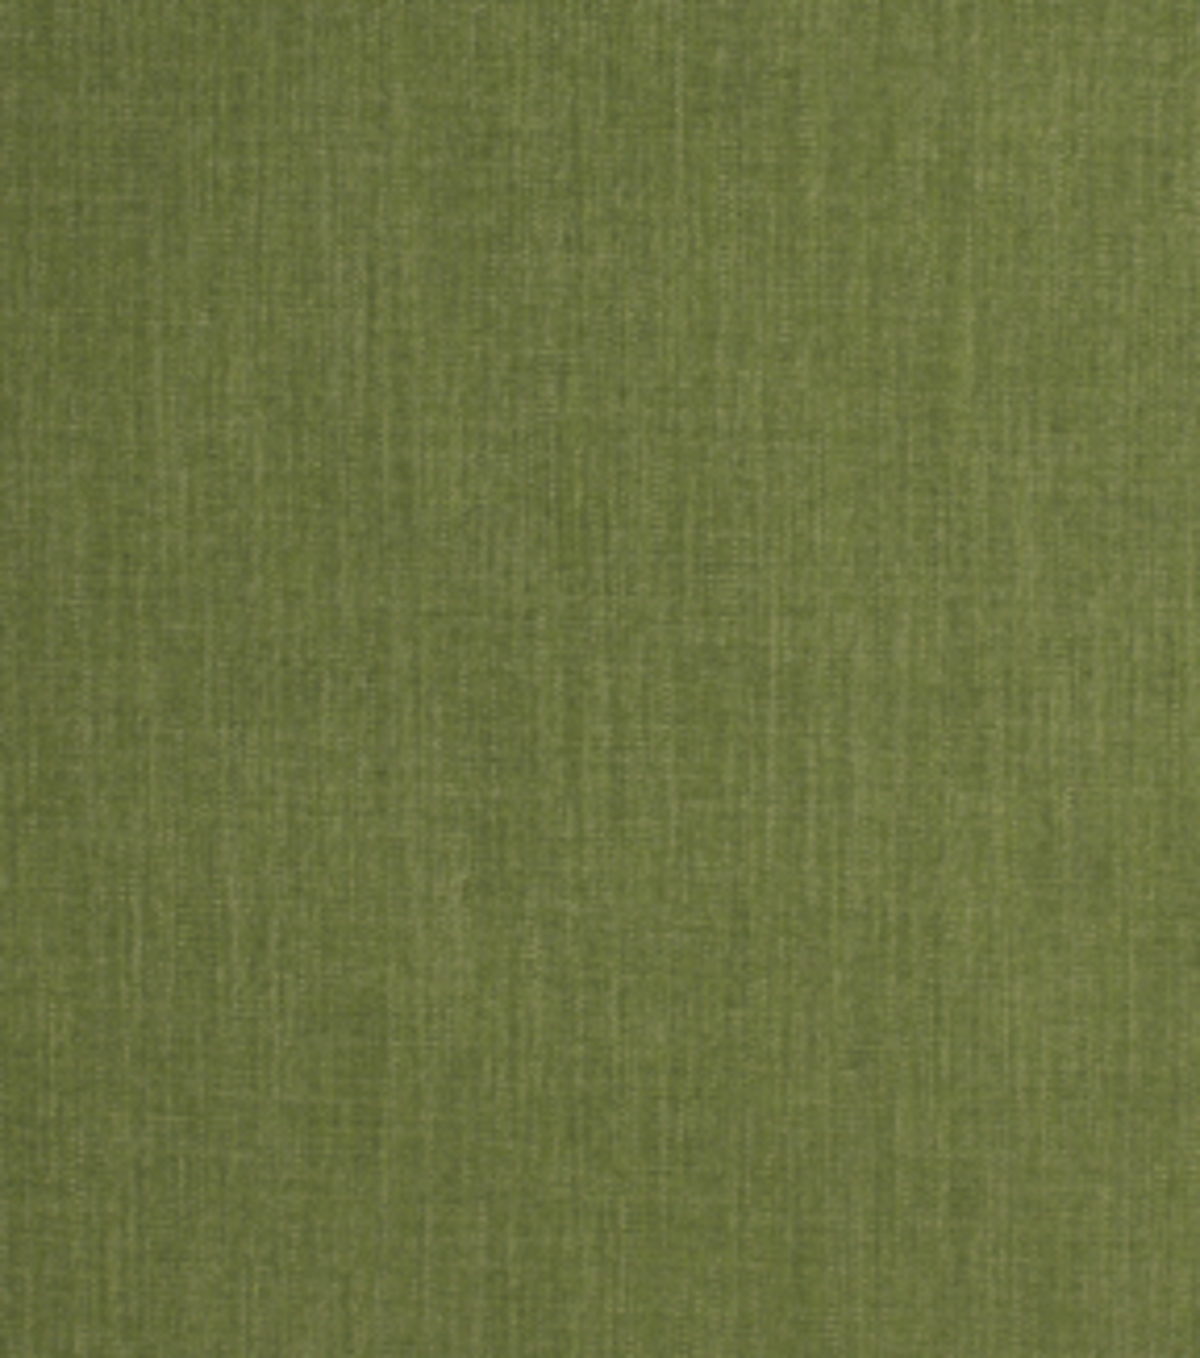 Home Decor 8\u0022x8\u0022 Fabric Swatch-Signature Series Media Jungel